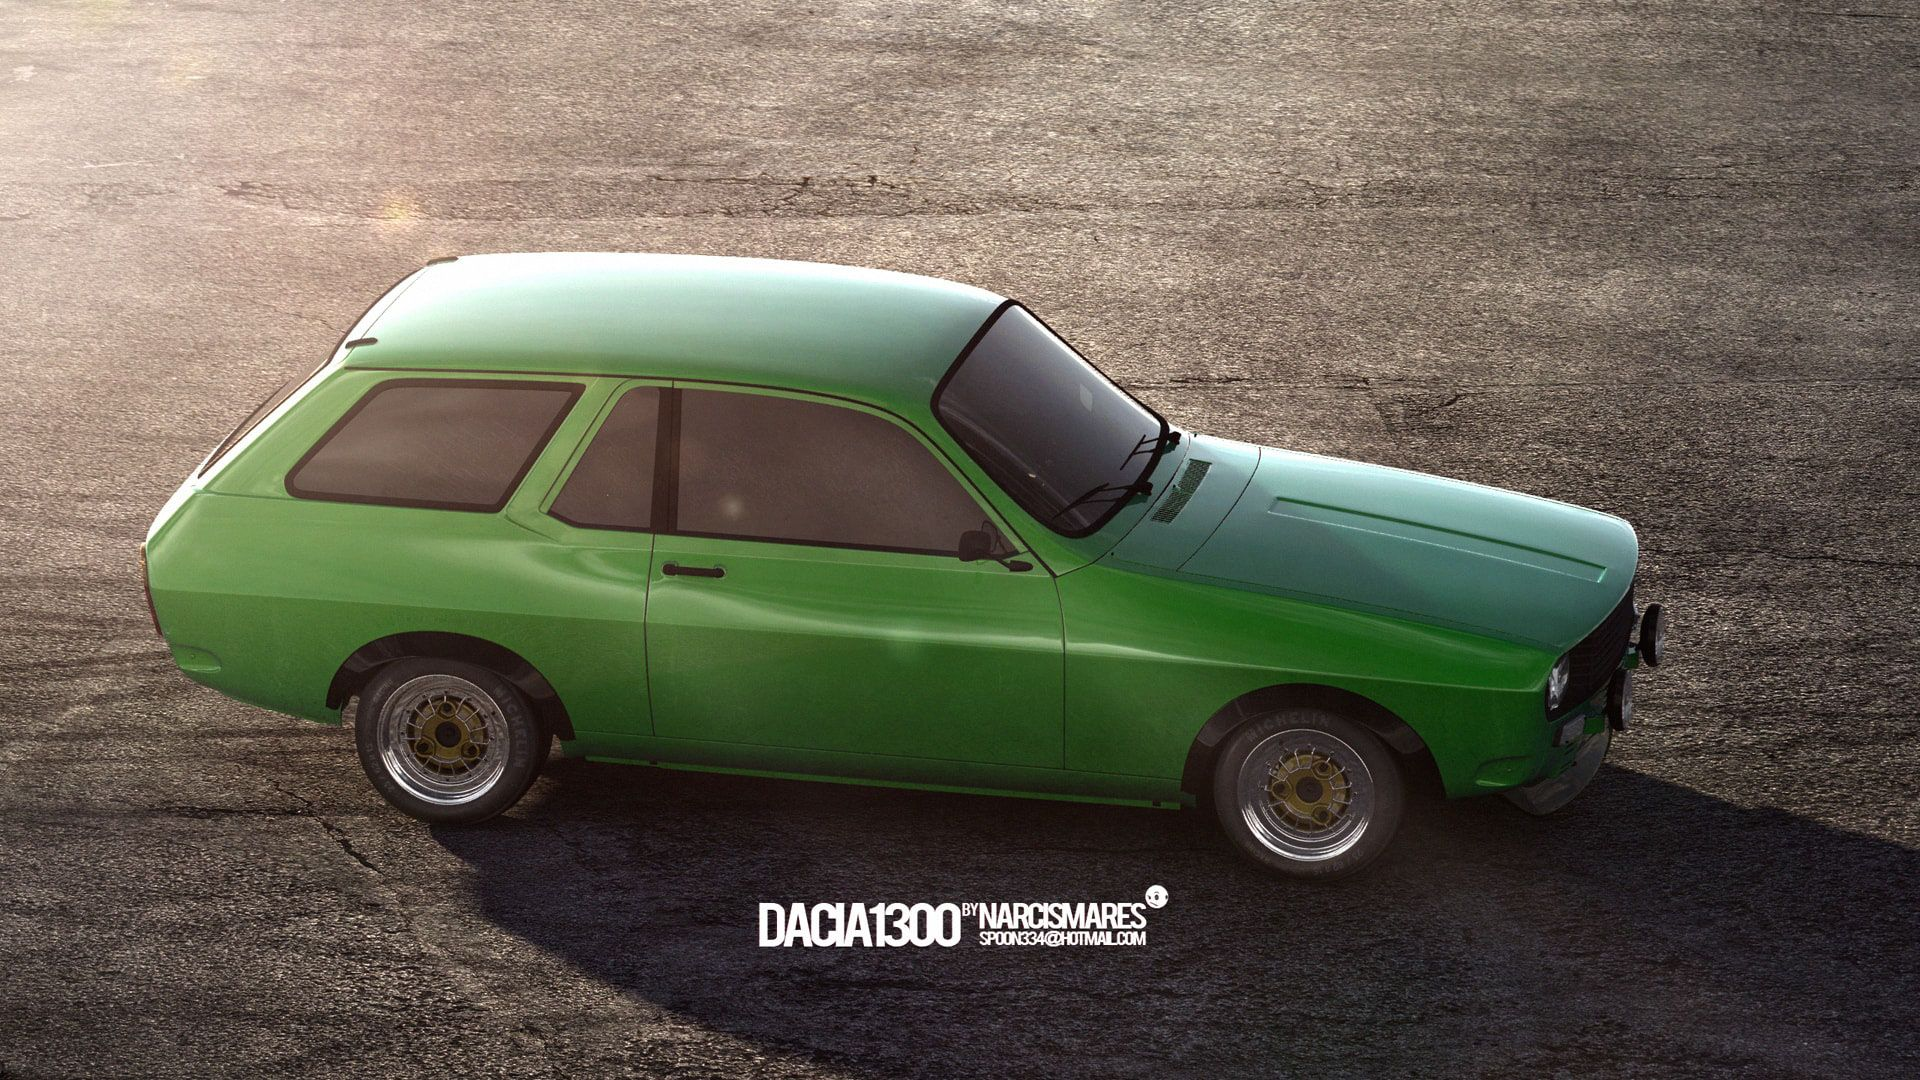 A Dream Of A Car Renault 12 Dacia 1300 Produced By Renault Starting 1968 And Dacia In 1969 Was A 4 Door Family Car Neat Dacia Cool Cars Sports Models